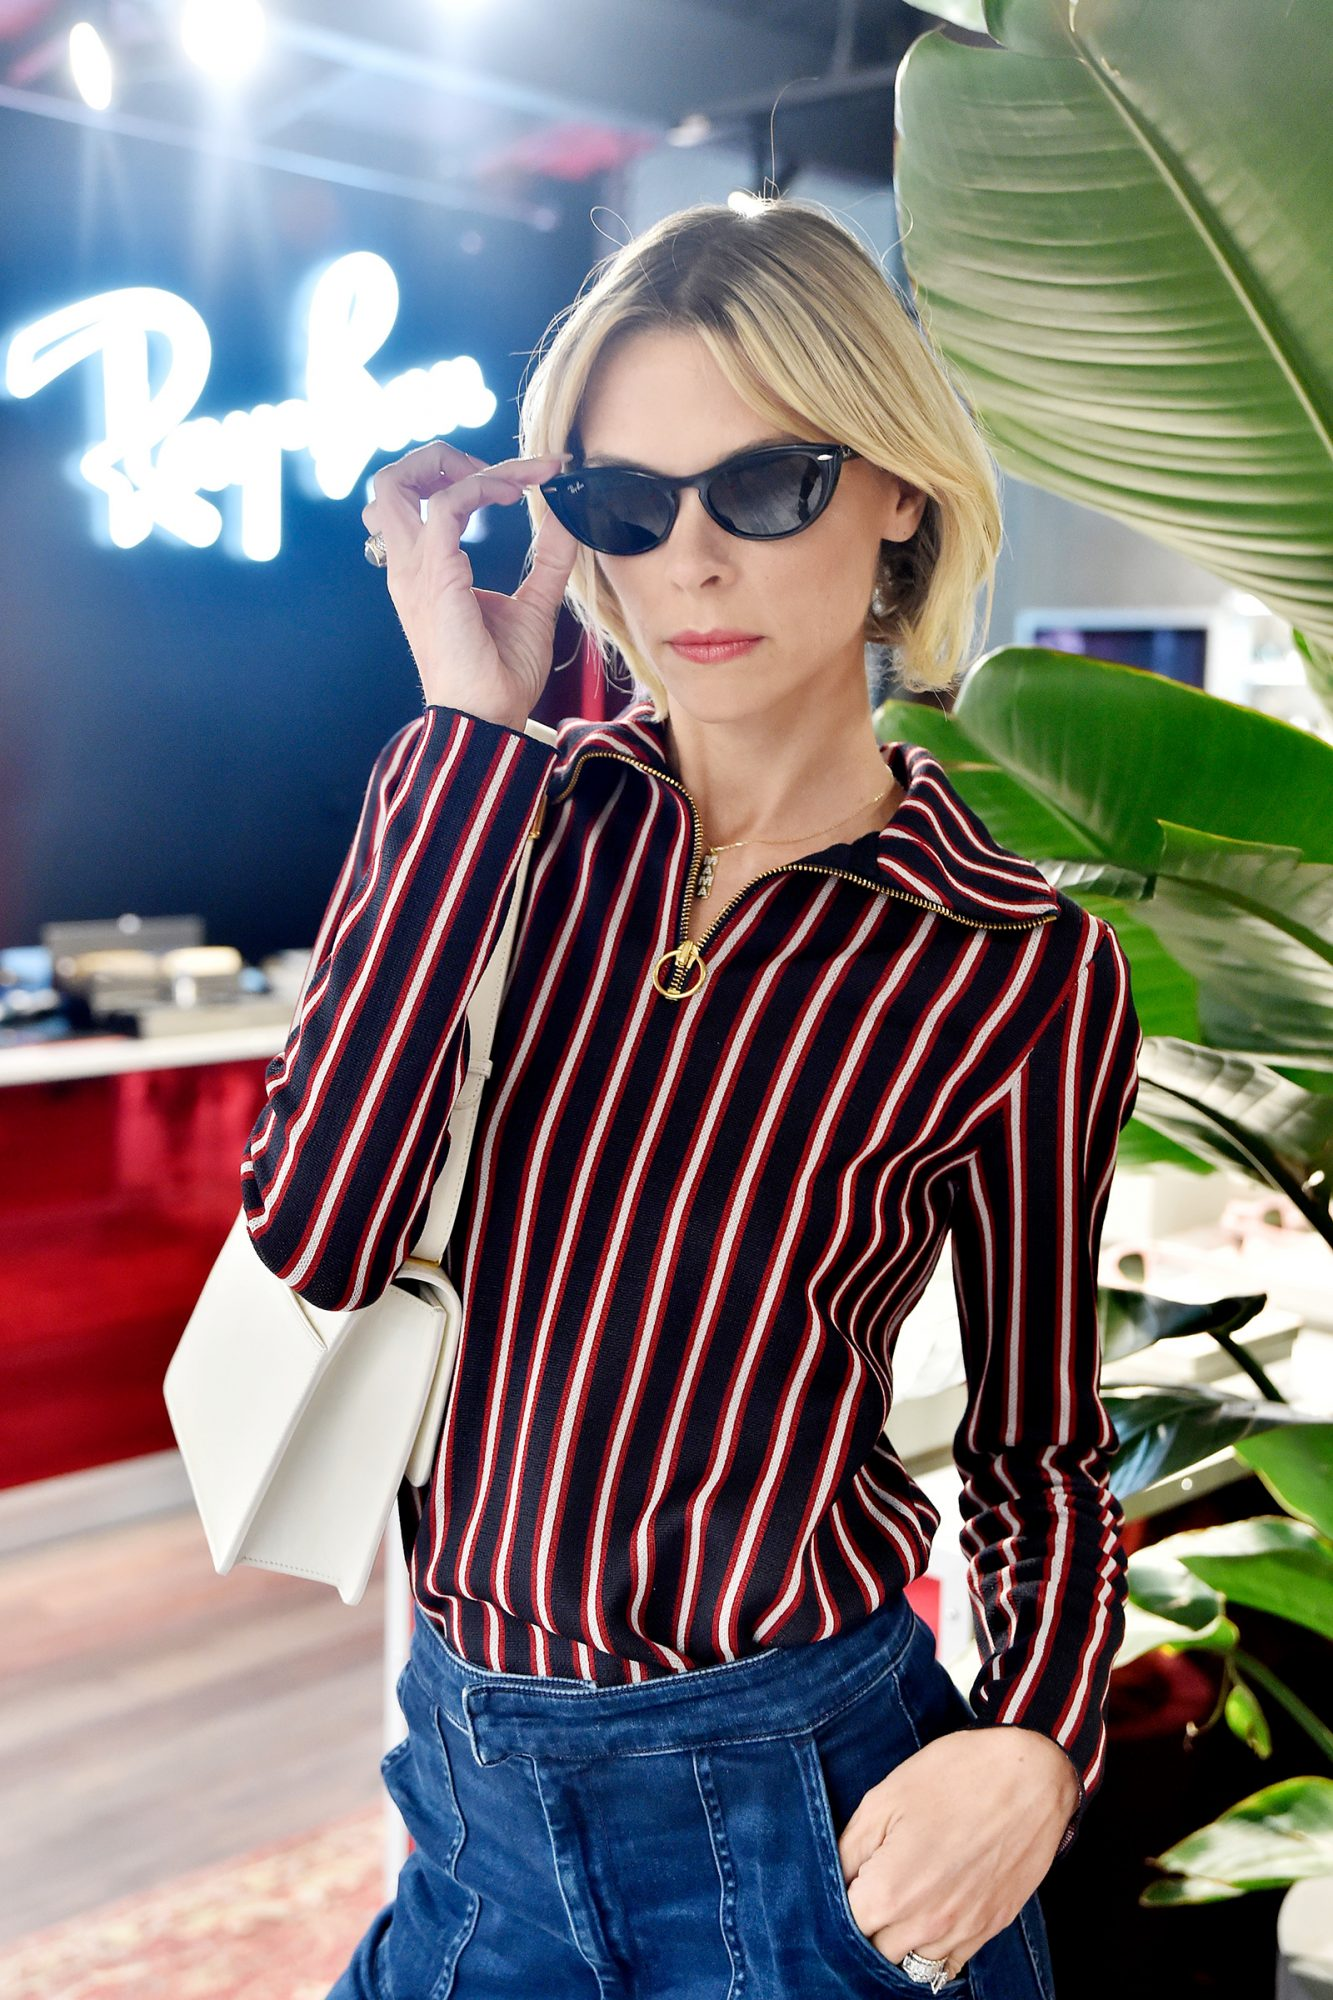 Jaime King attends Ray-Ban Venice Store Opening Event on November 07, 2019 in Venice, California